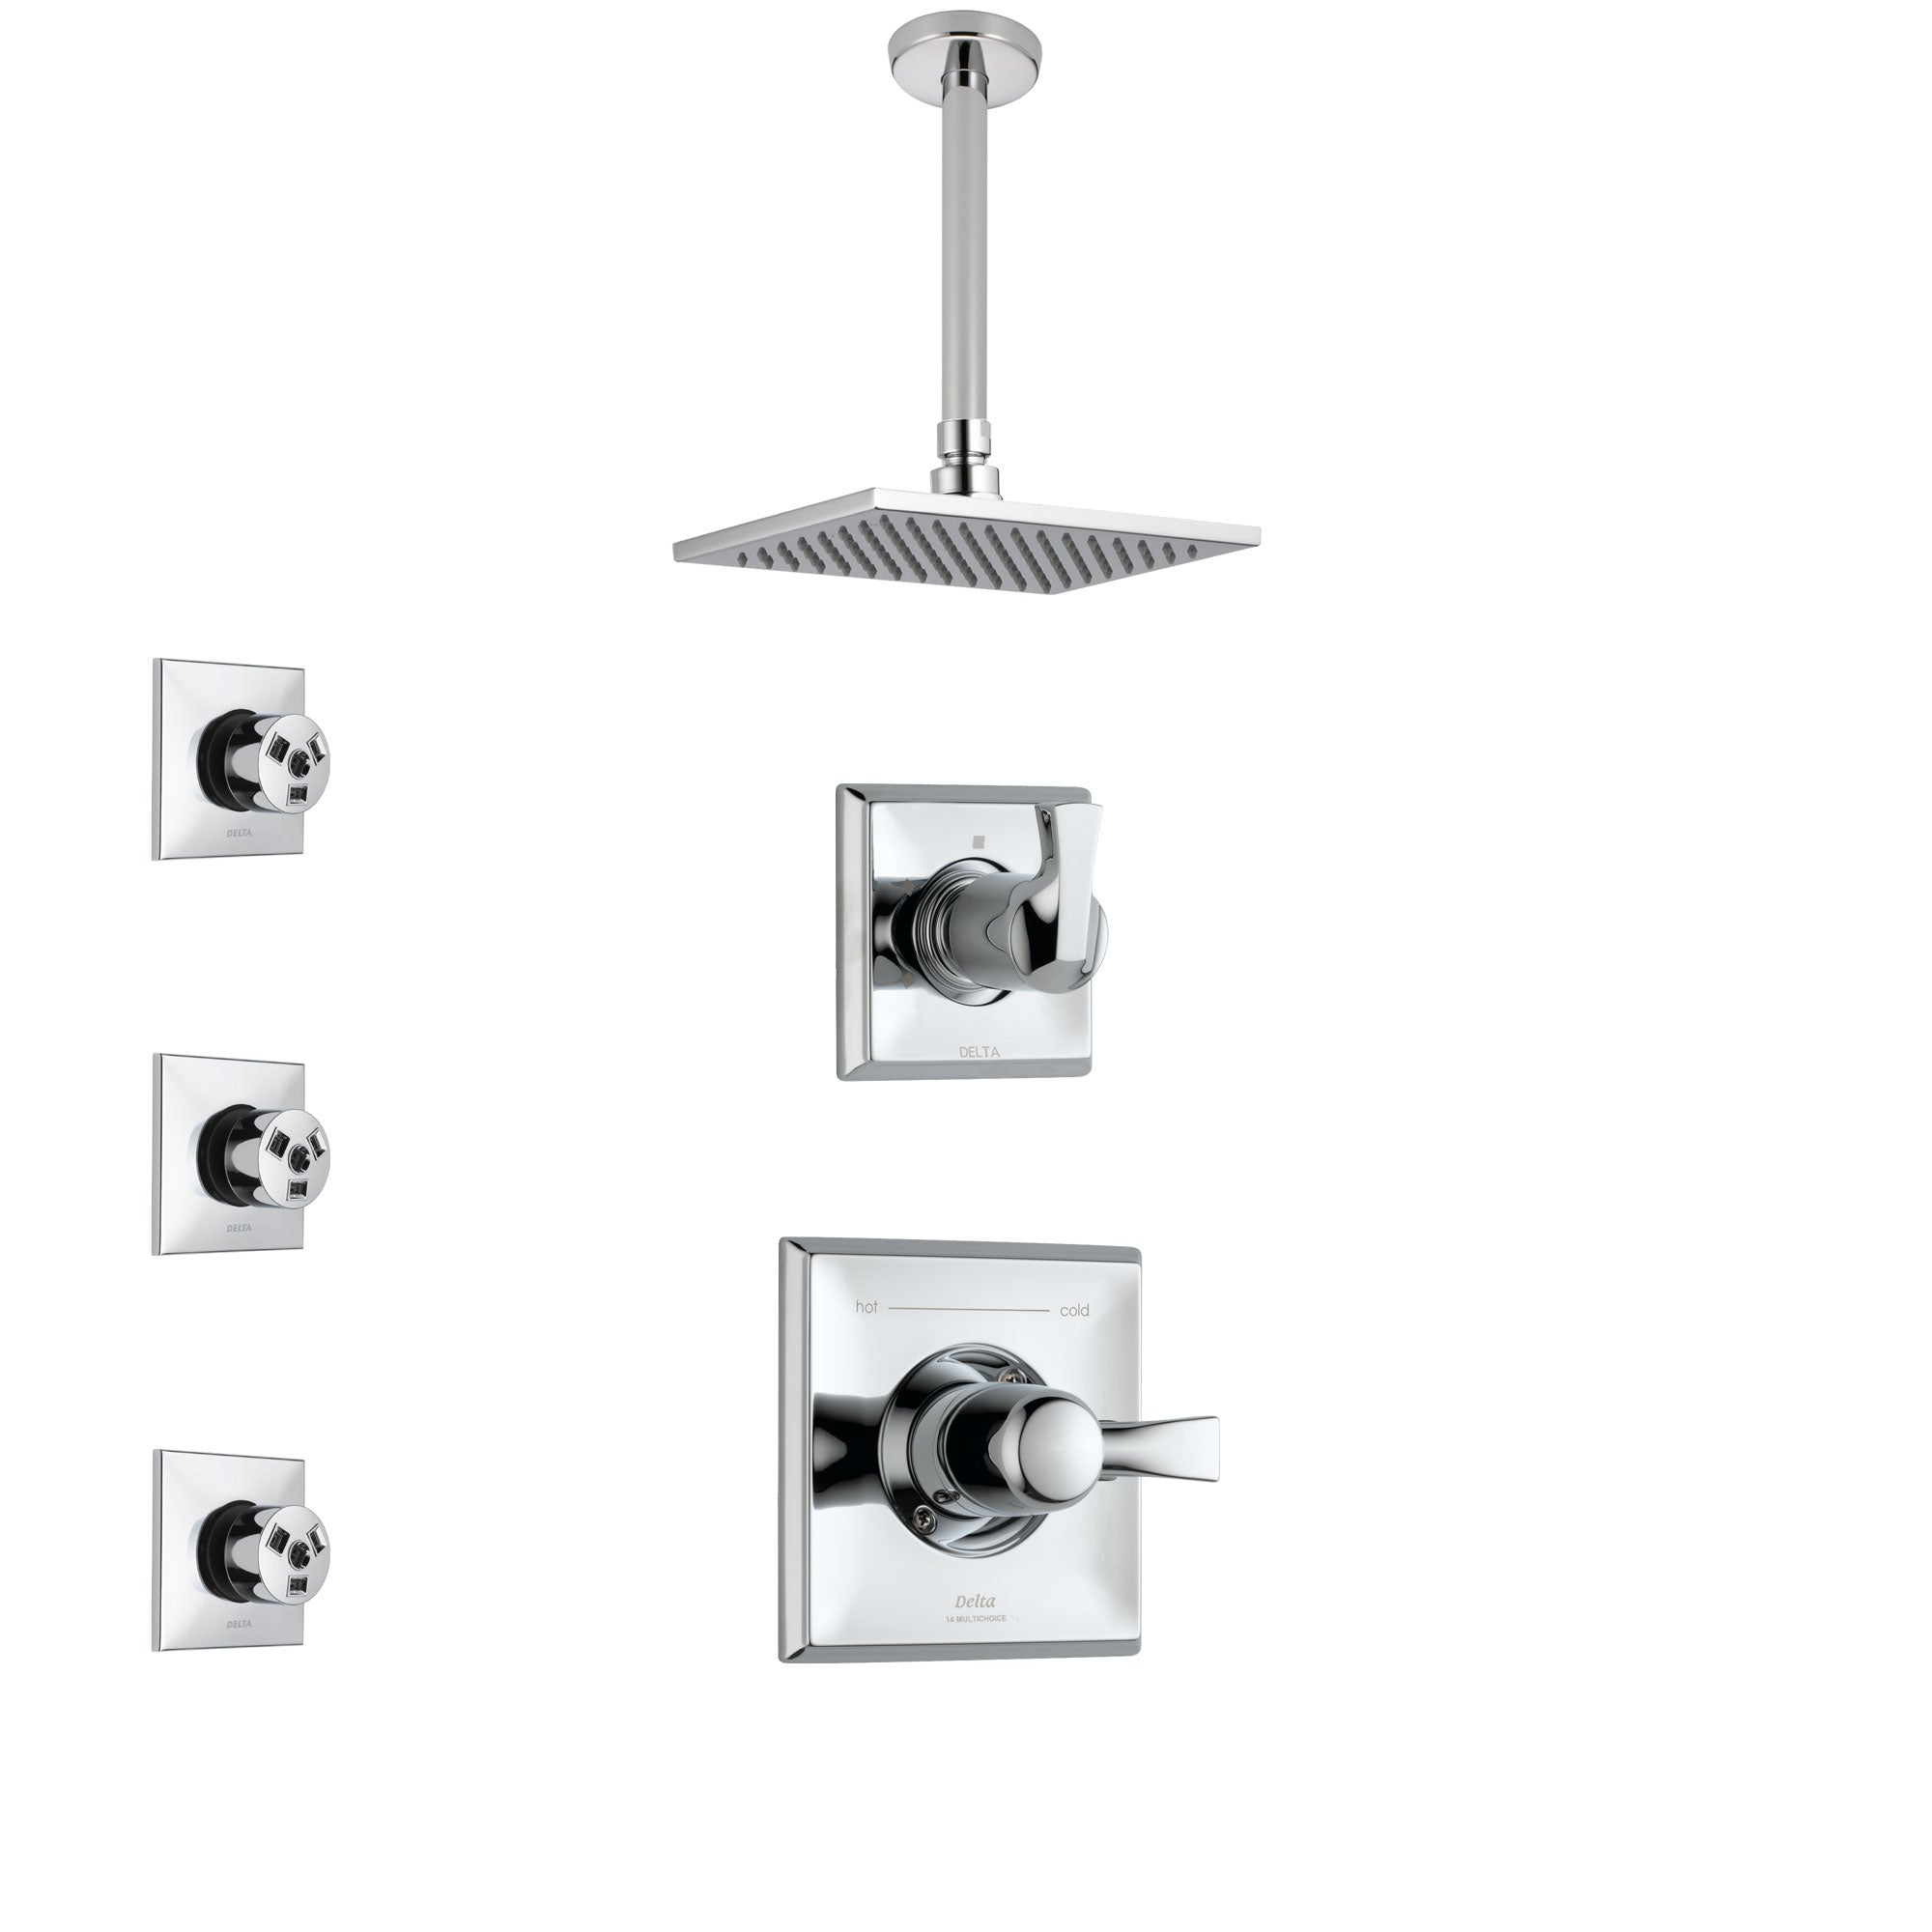 Delta Dryden Chrome Finish Shower System with Control Handle, 3-Setting Diverter, Ceiling Mount Showerhead, and 3 Body Sprays SS14517